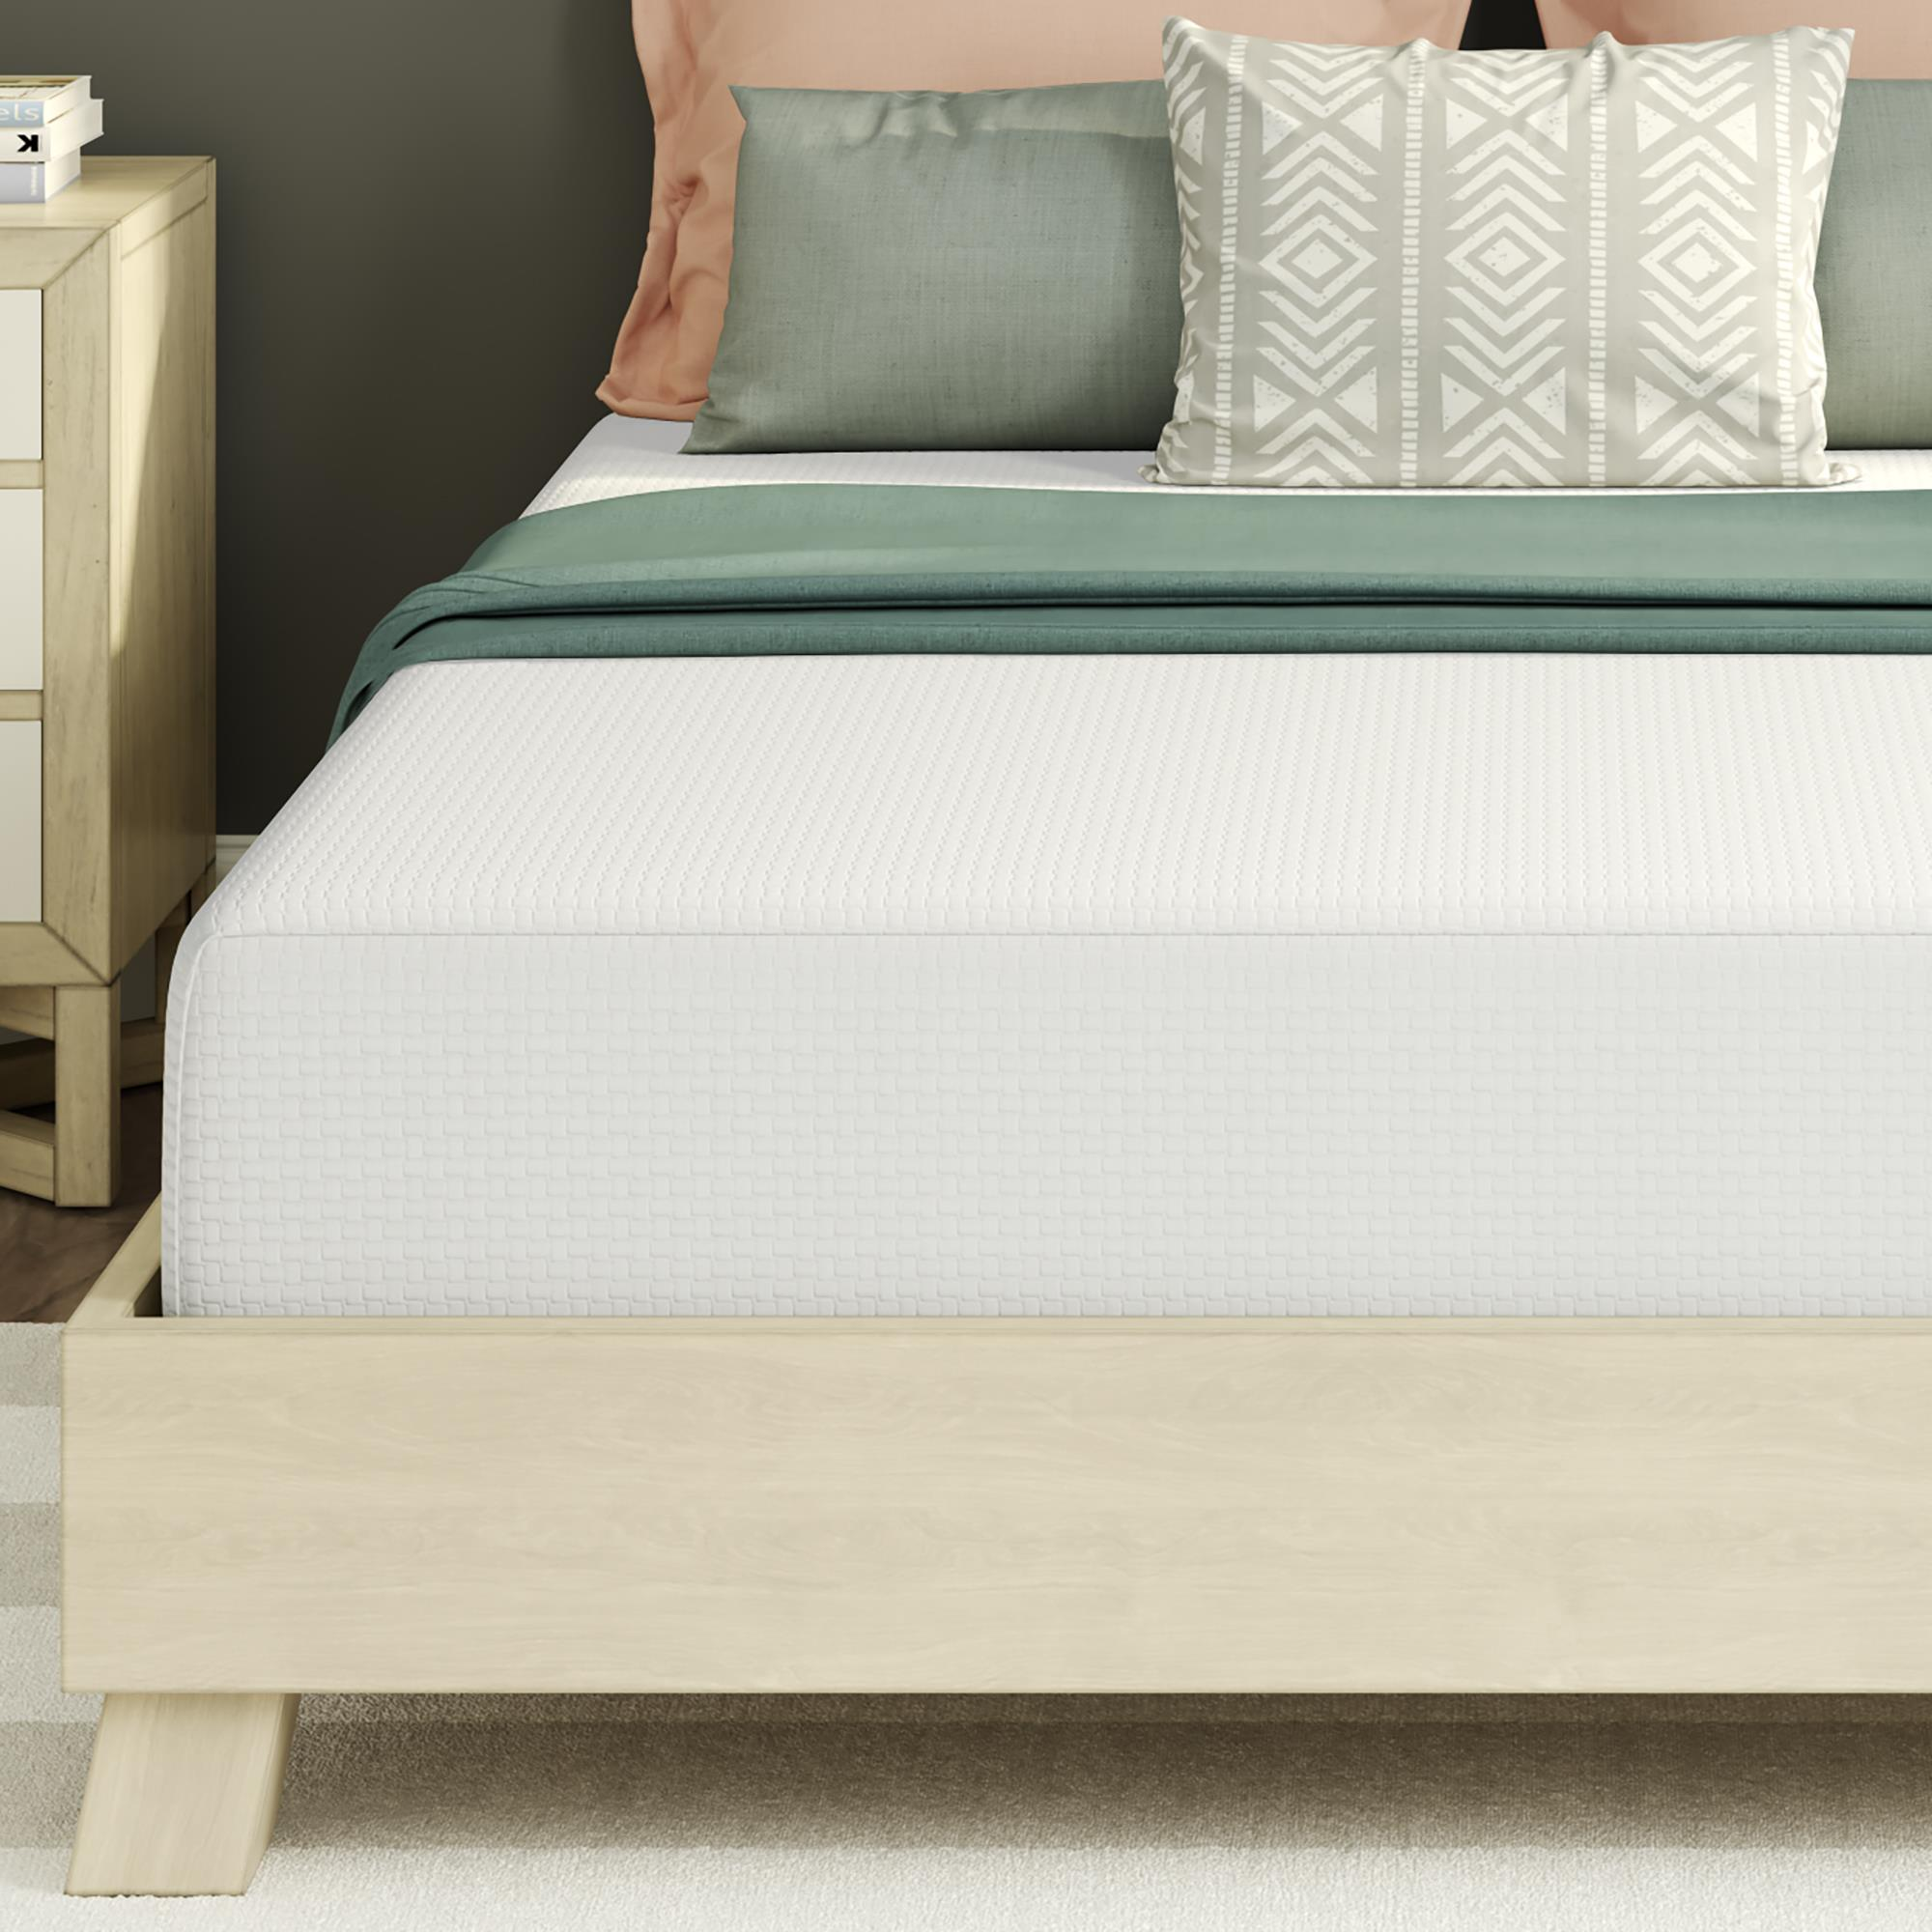 """Signature Sleep Gold CertiPUR-US Inspire 12"""" Memory Foam Mattress, Multiple Sizes by Dorel Home Products"""